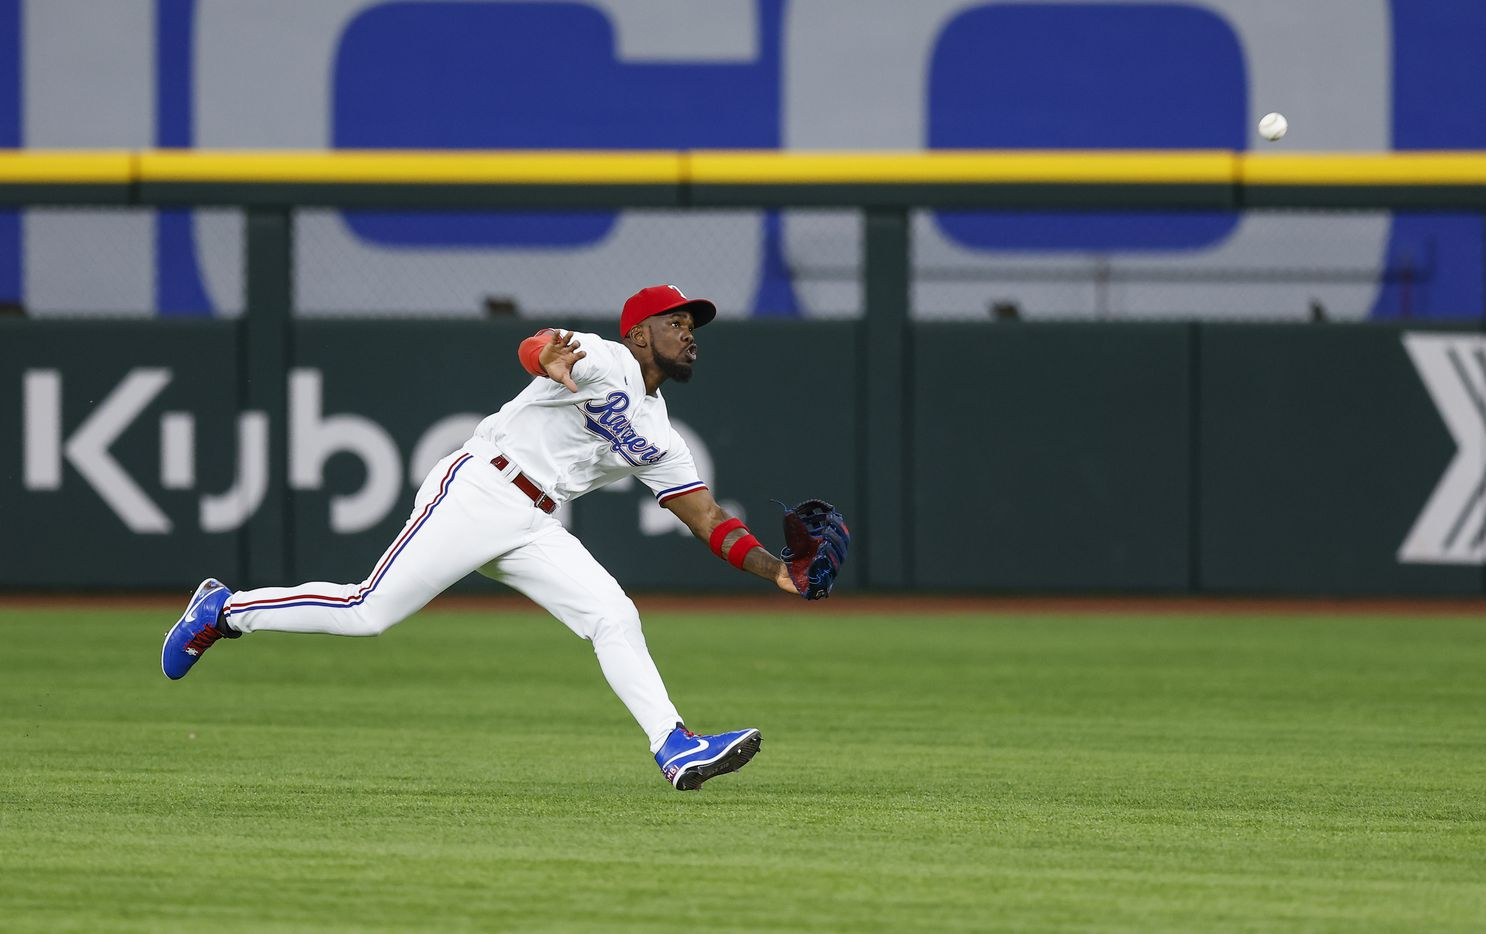 Texas Rangers center fielder Adolis Garcia (53) catches a fly out hit by Oakland Athletics' Tony Kemp during the ninth inning of a baseball game in Arlington, Monday, June 21, 2021. Texas won 8-3. (Brandon Wade/Special Contributor)